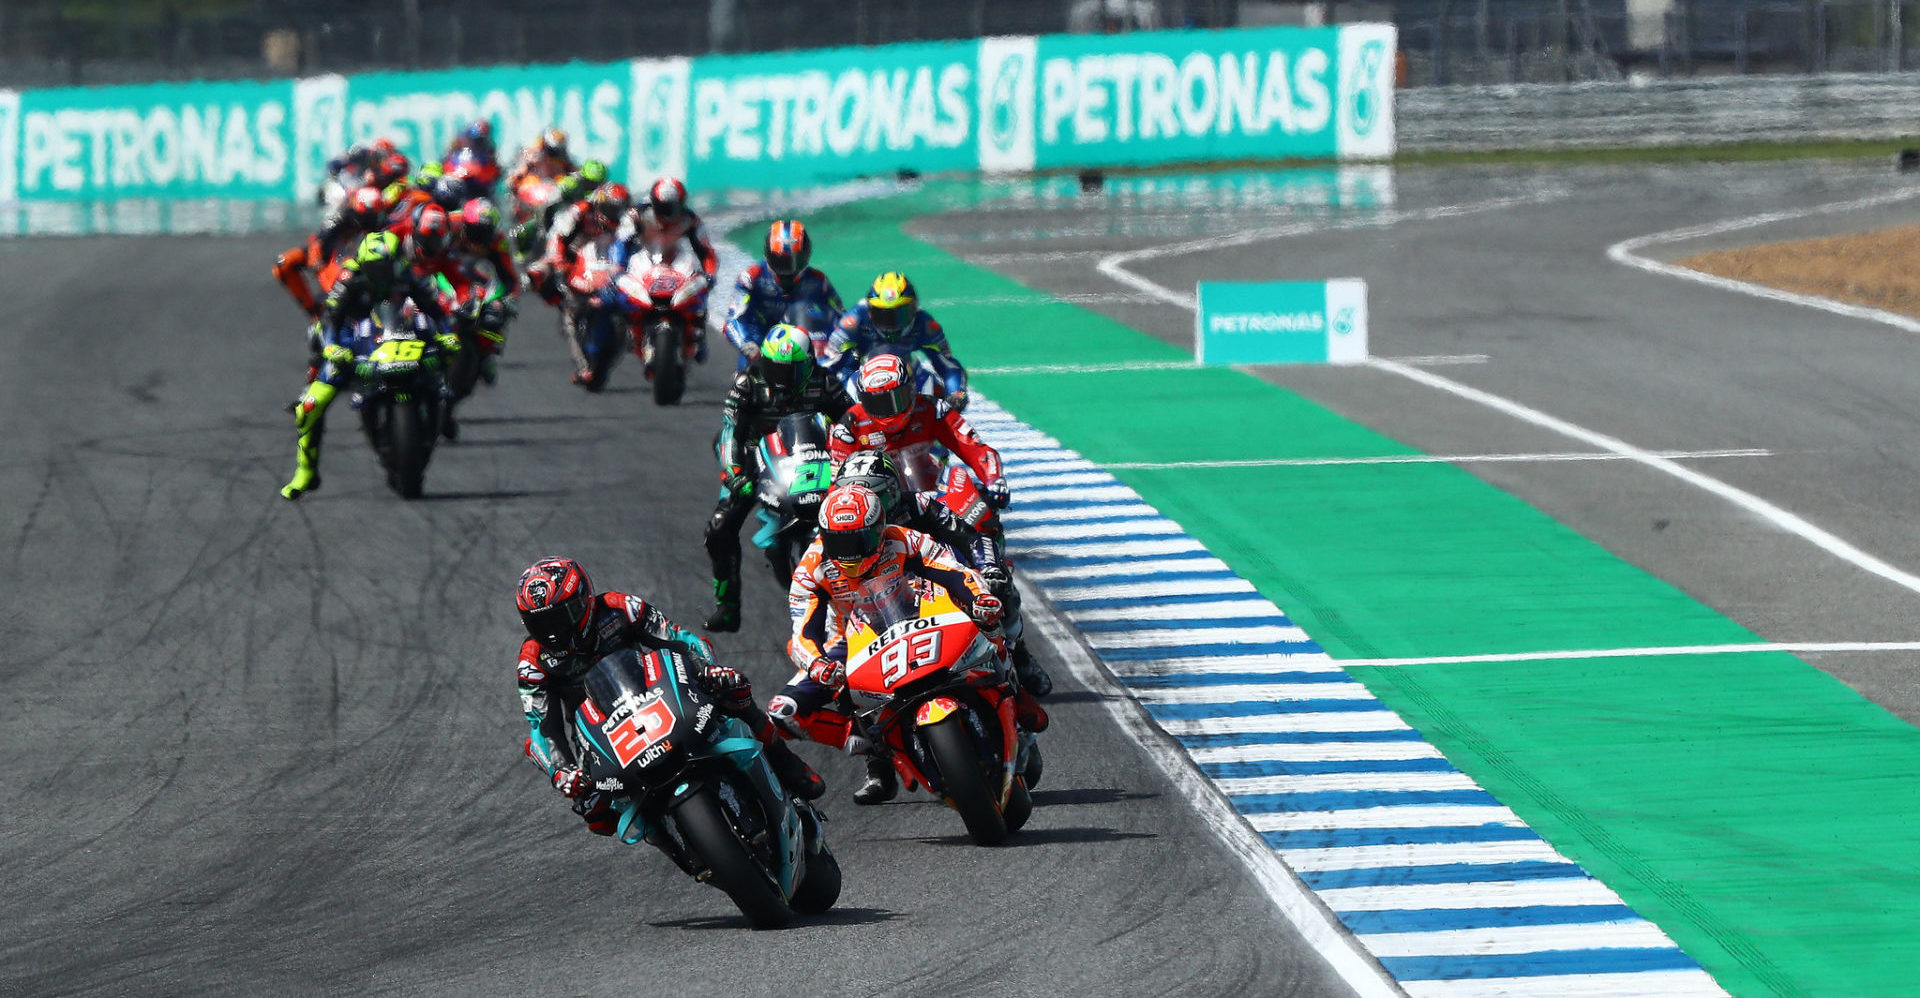 Fabio Quartararo (20) leads Marc Marquez (93) and the rest of the field early in the MotoGP race in Thailand in 2019. Photo courtesy of PETRONAS Yamaha SRT.